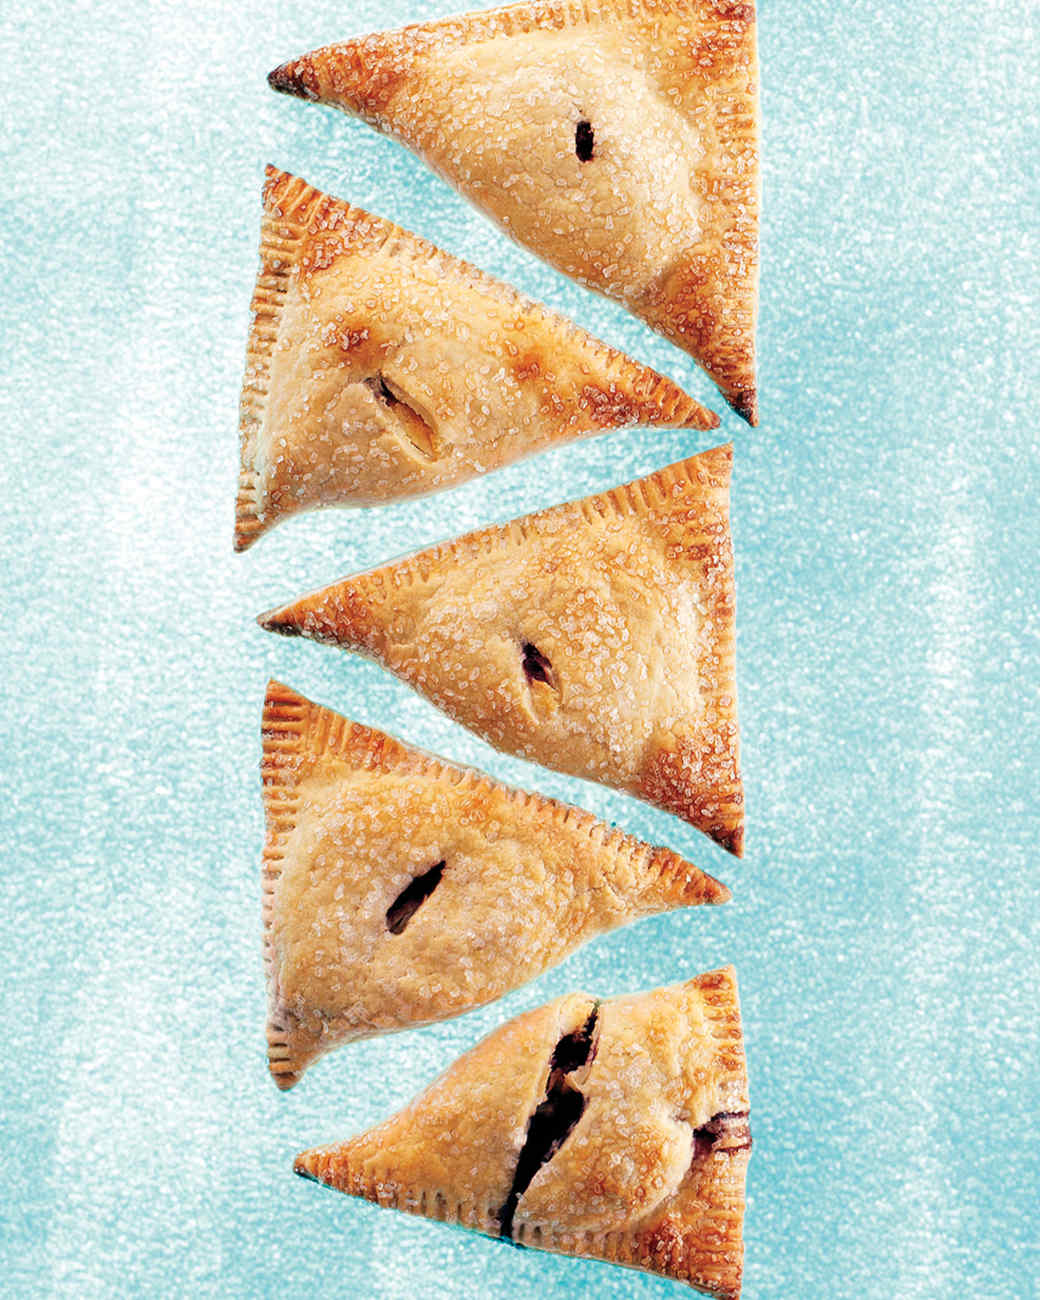 blueberry-cream-cheese-hand-pies-2-med108372.jpg